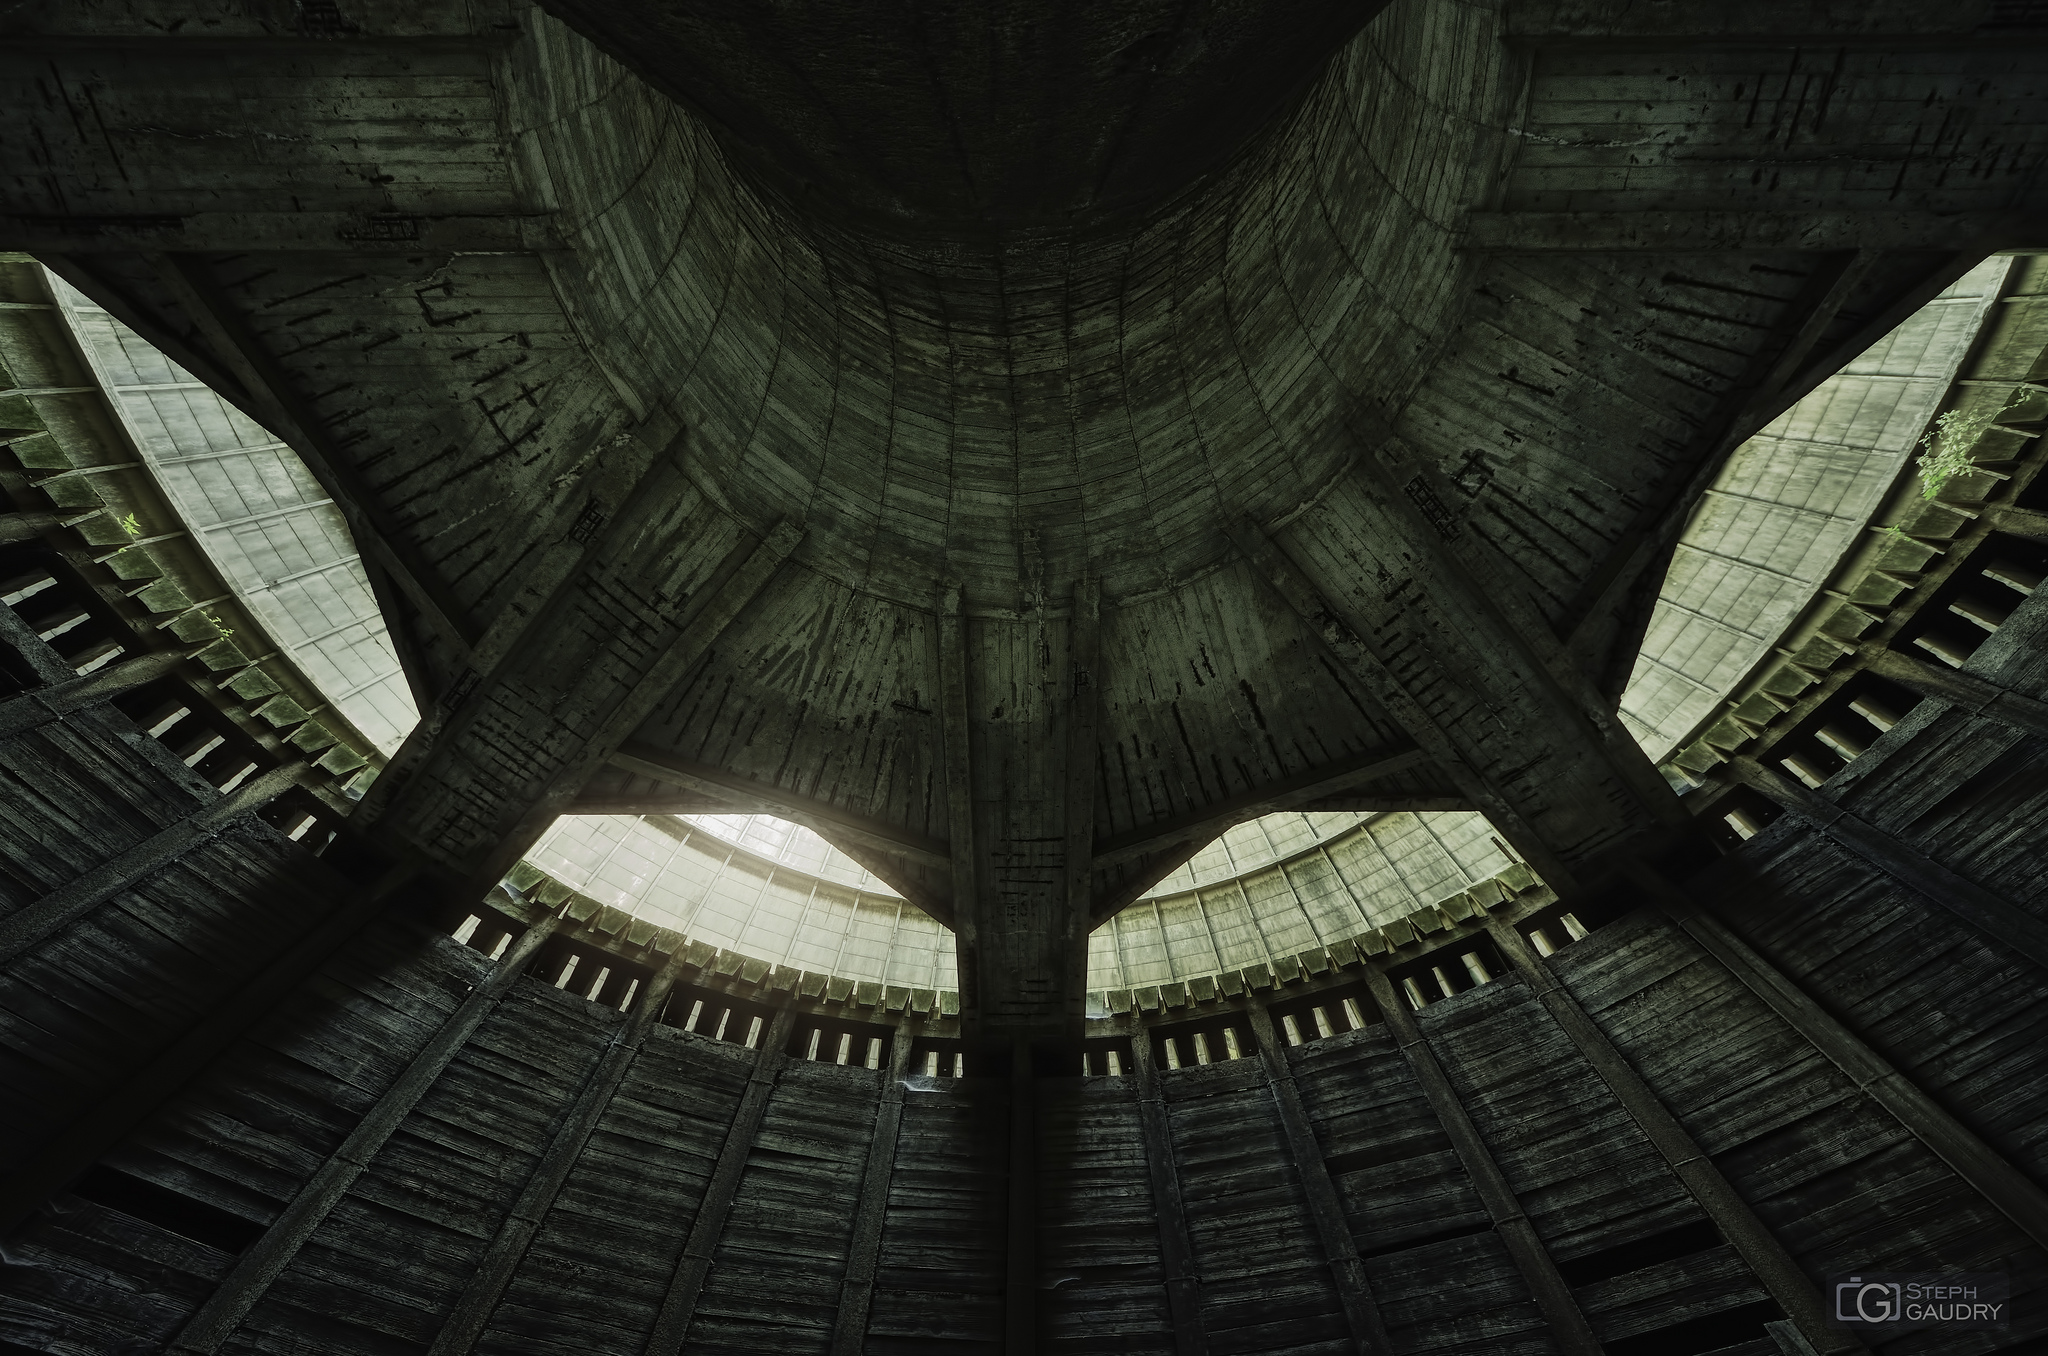 Inside the Death Star (half circle) [Click to start slideshow]